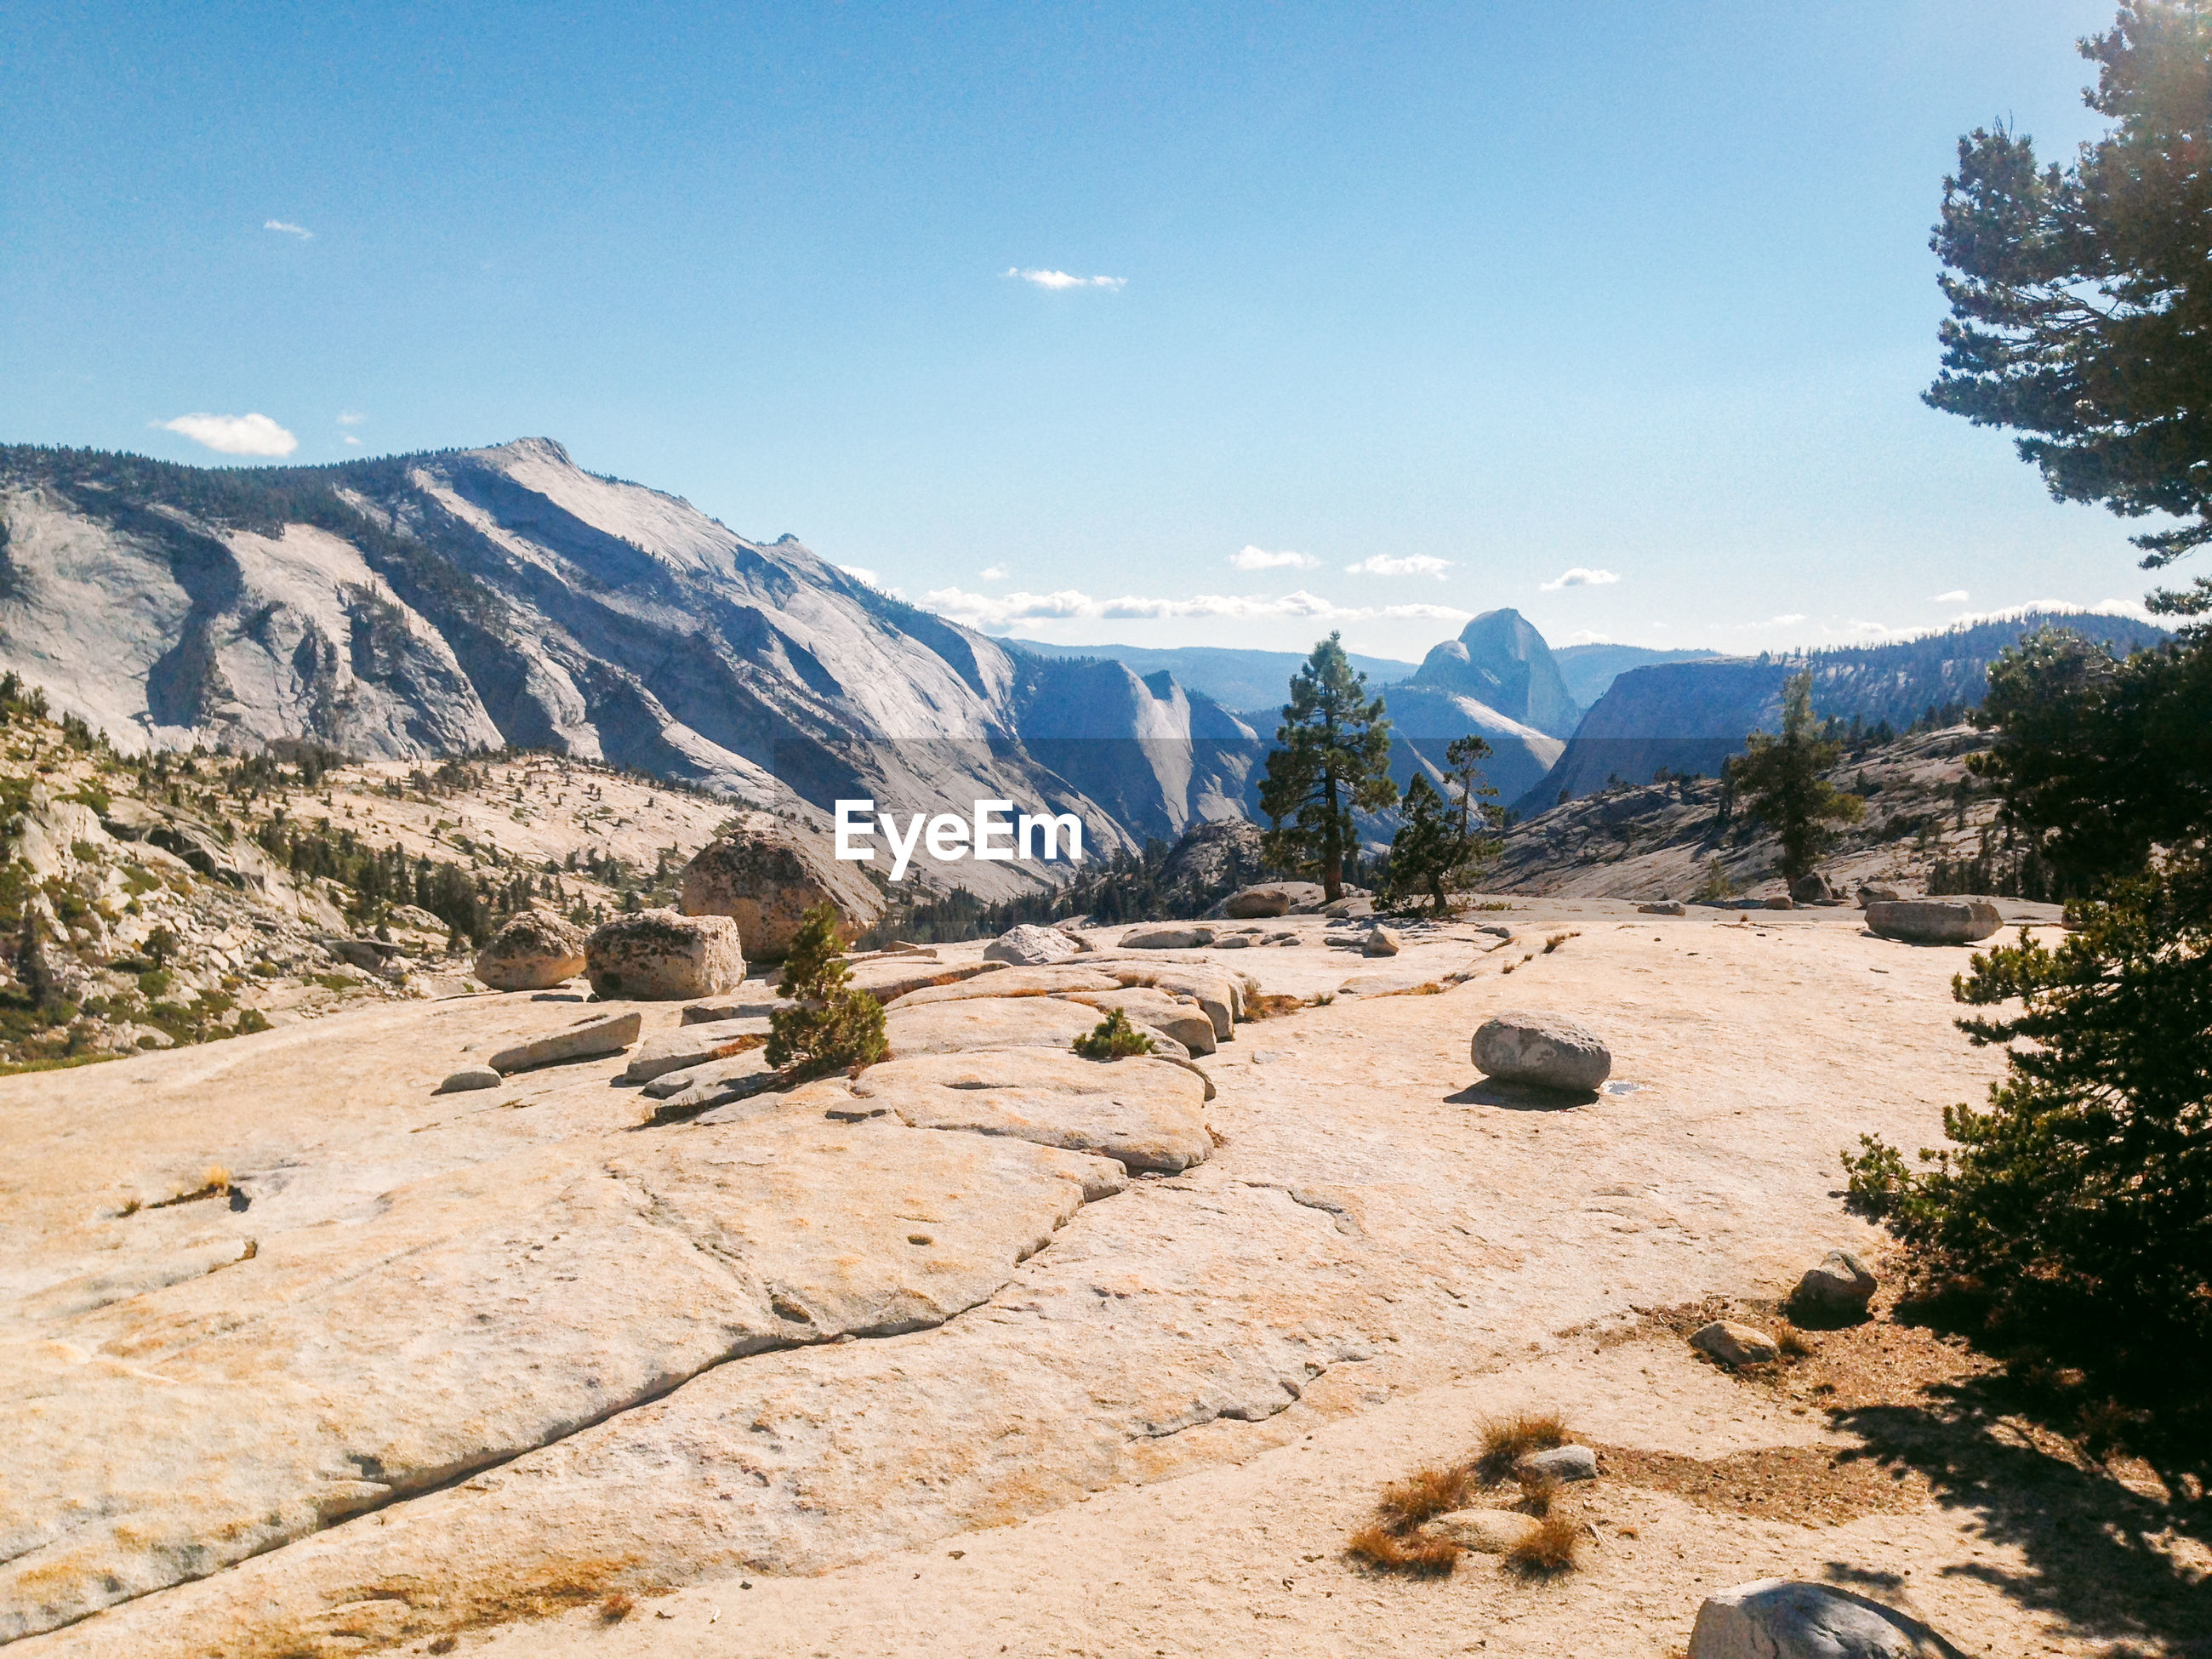 Scenic view of yosemite national park against blue sky